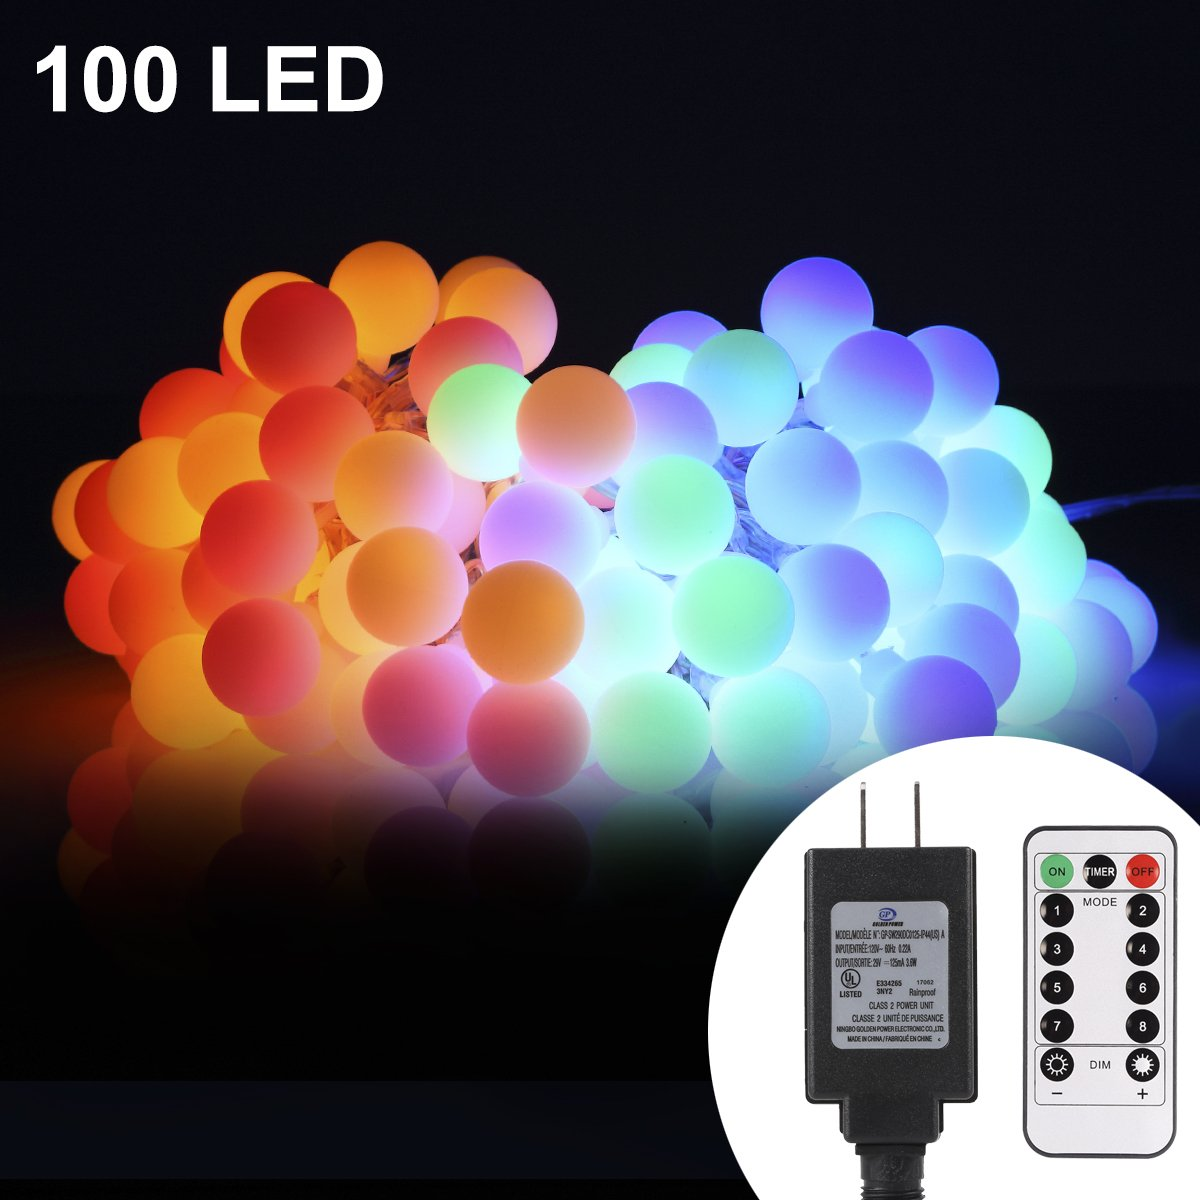 ProGreen 33ft 100 LED Globe String Lights, 8 Dimmable Lighting Modes with Remote & Timer, UL Listed 29V Low voltage Waterproof Decorative Lights for Bedroom, Patio, Garden, Parties(Multi Color)